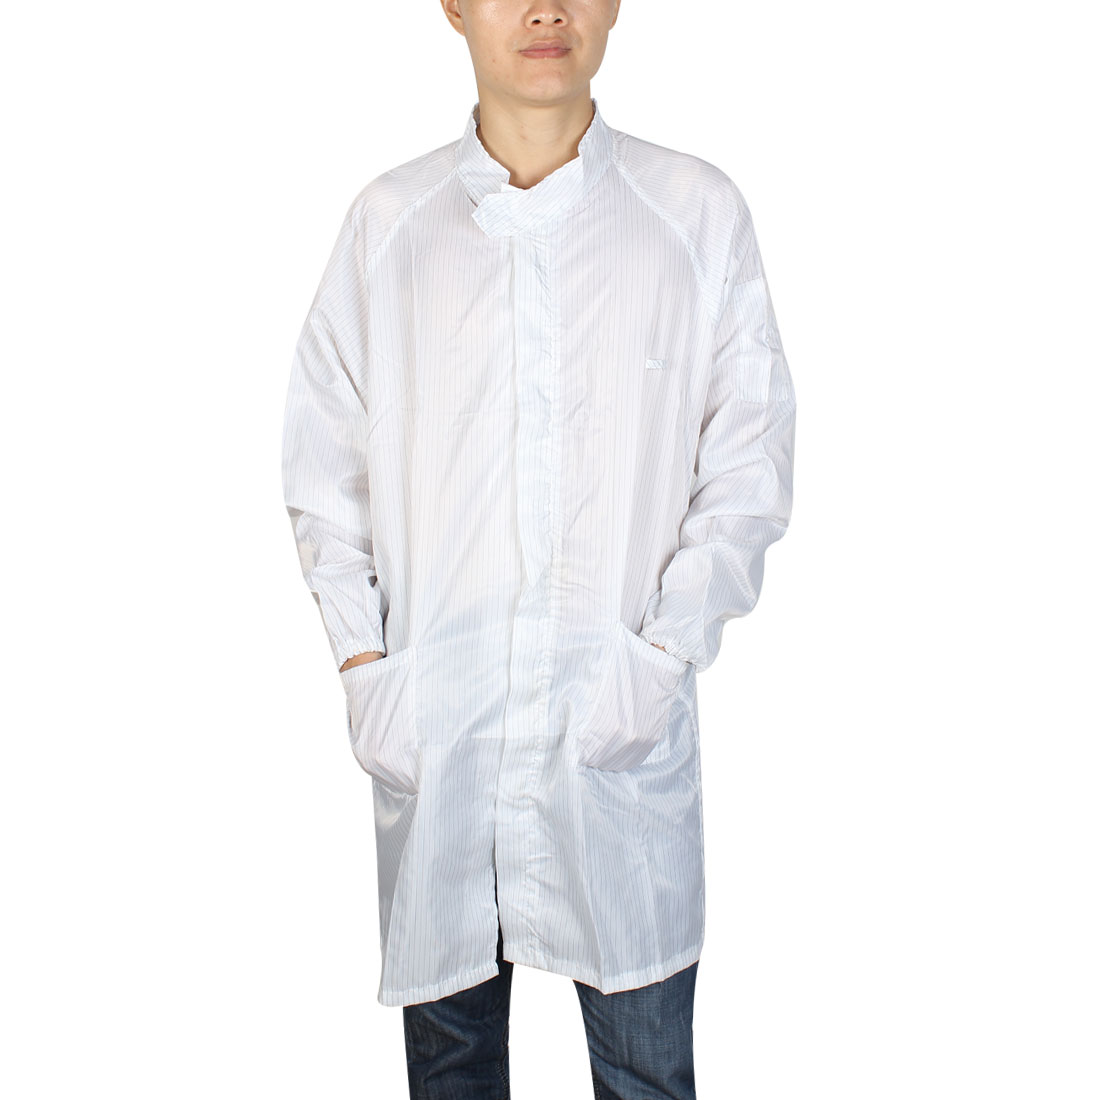 L White ESD Lab Zip Up Elastic Cuff Anti Static Coat Overalls Uniform for Women Men